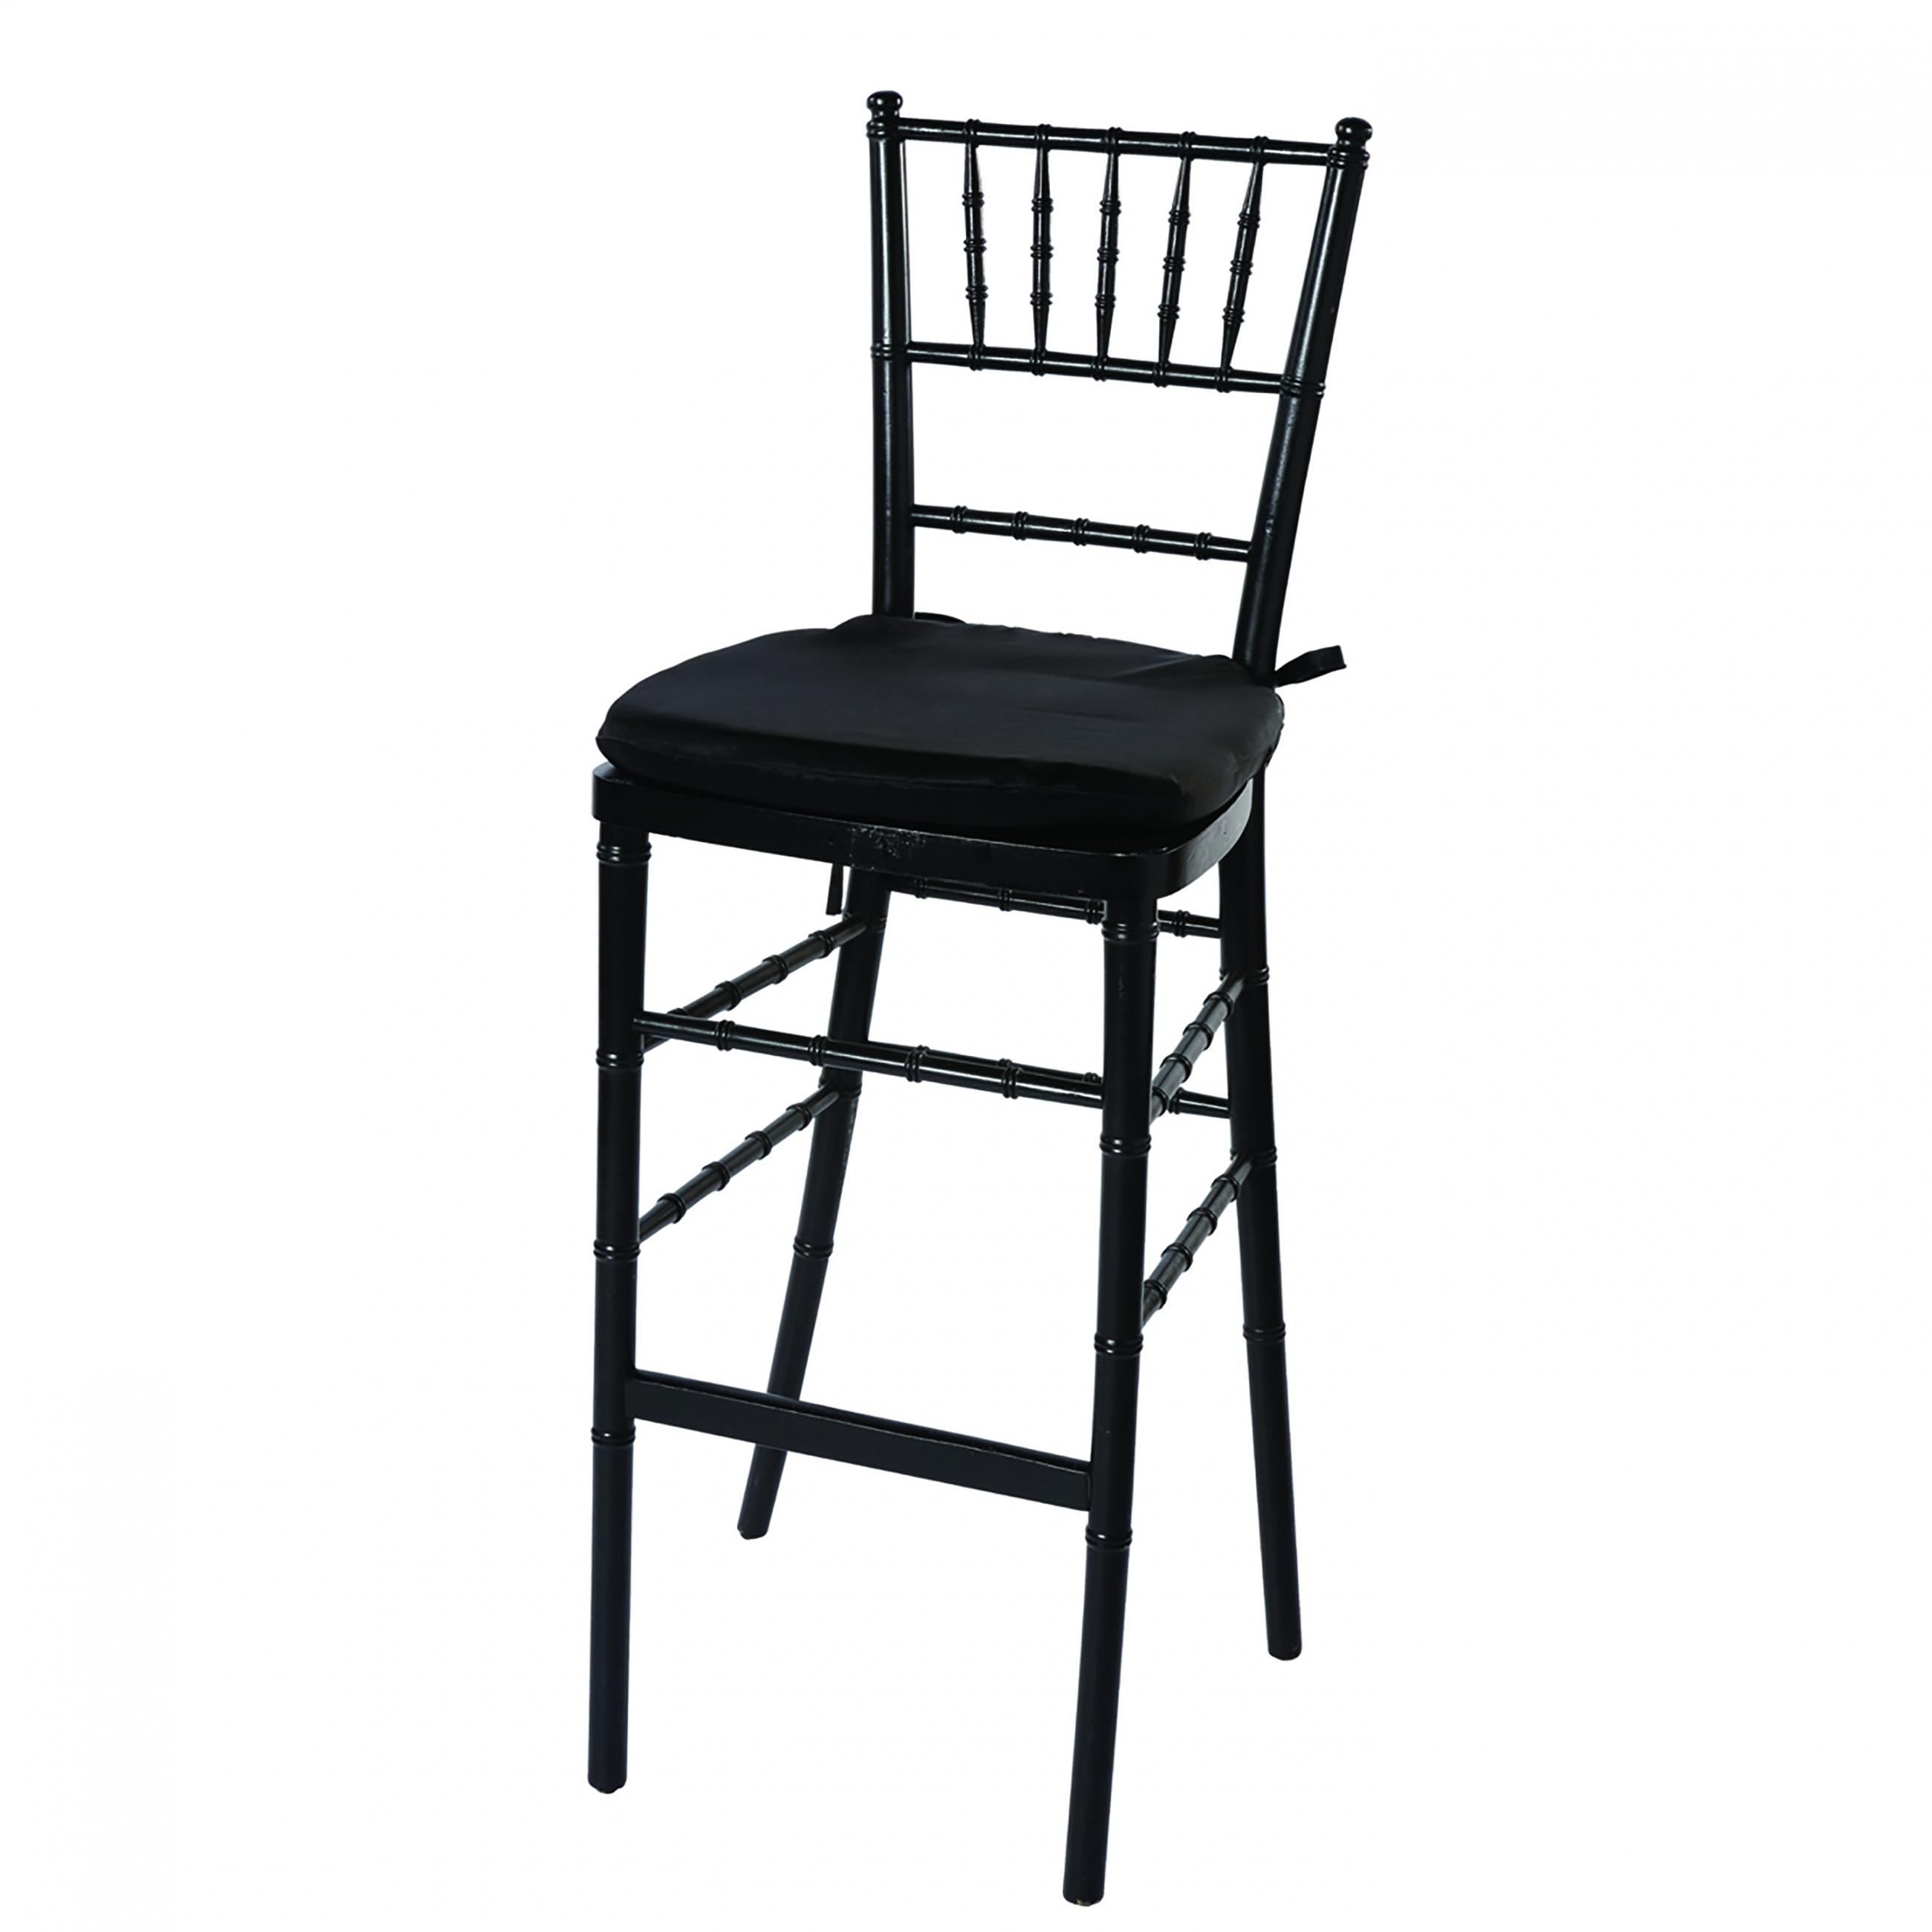 Admirable Barstool Ballroom Black Newport Tent Company Spiritservingveterans Wood Chair Design Ideas Spiritservingveteransorg